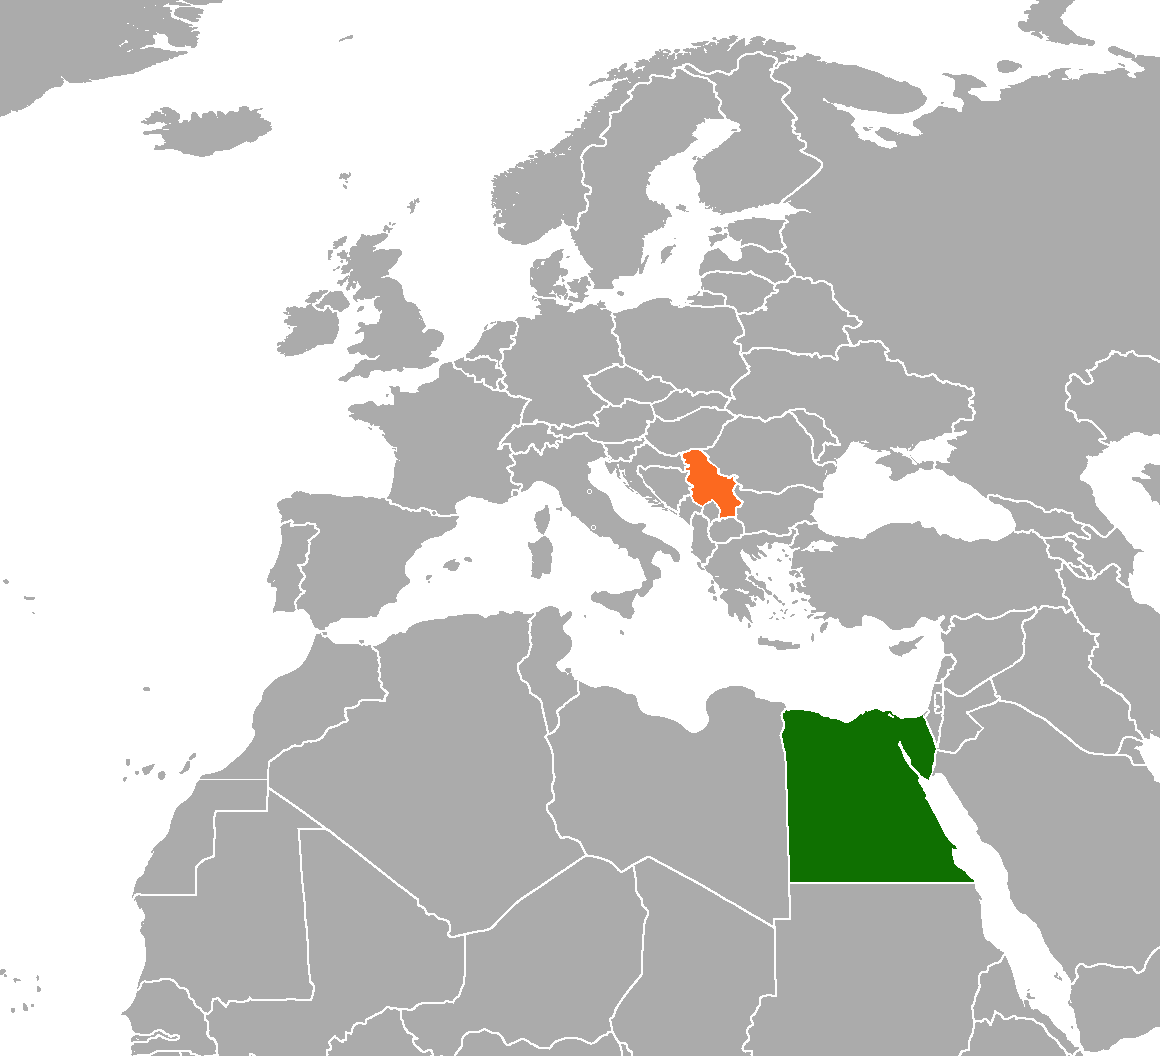 Map indicating locations of Egypt and Serbia